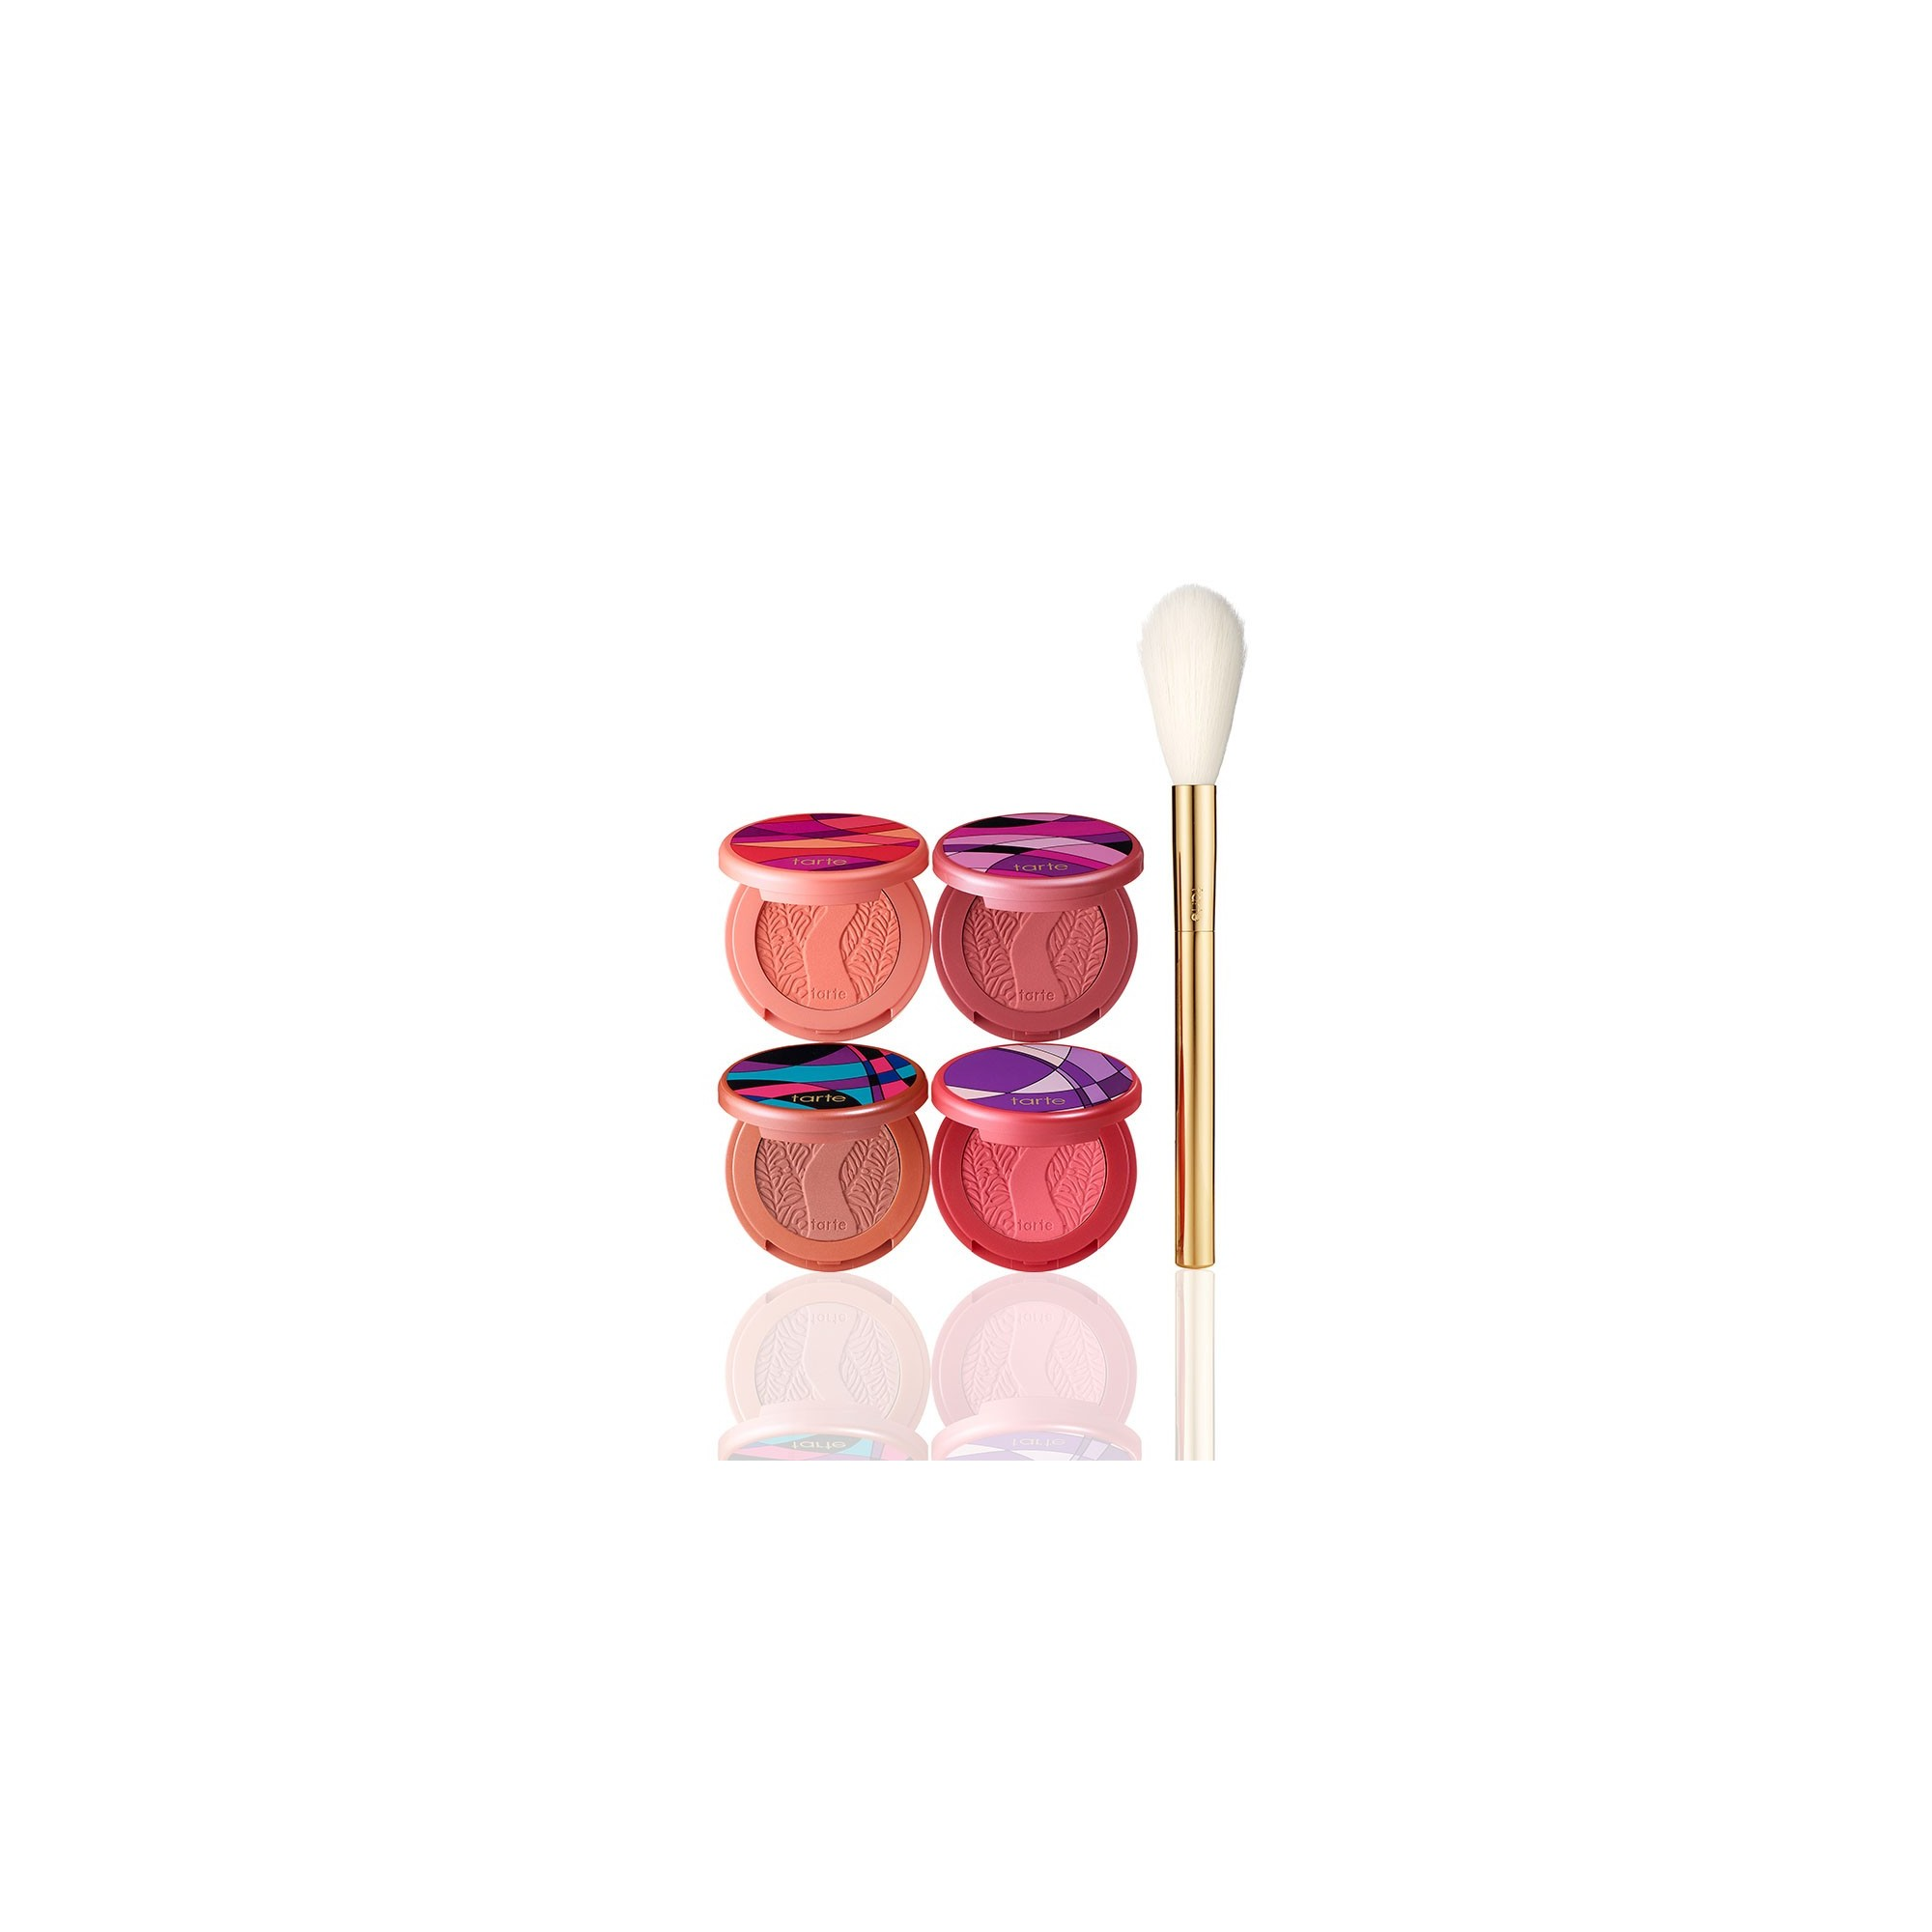 Tarte Sculpted Cheeks Deluxe Amazonian Clay Blush Set & Brush